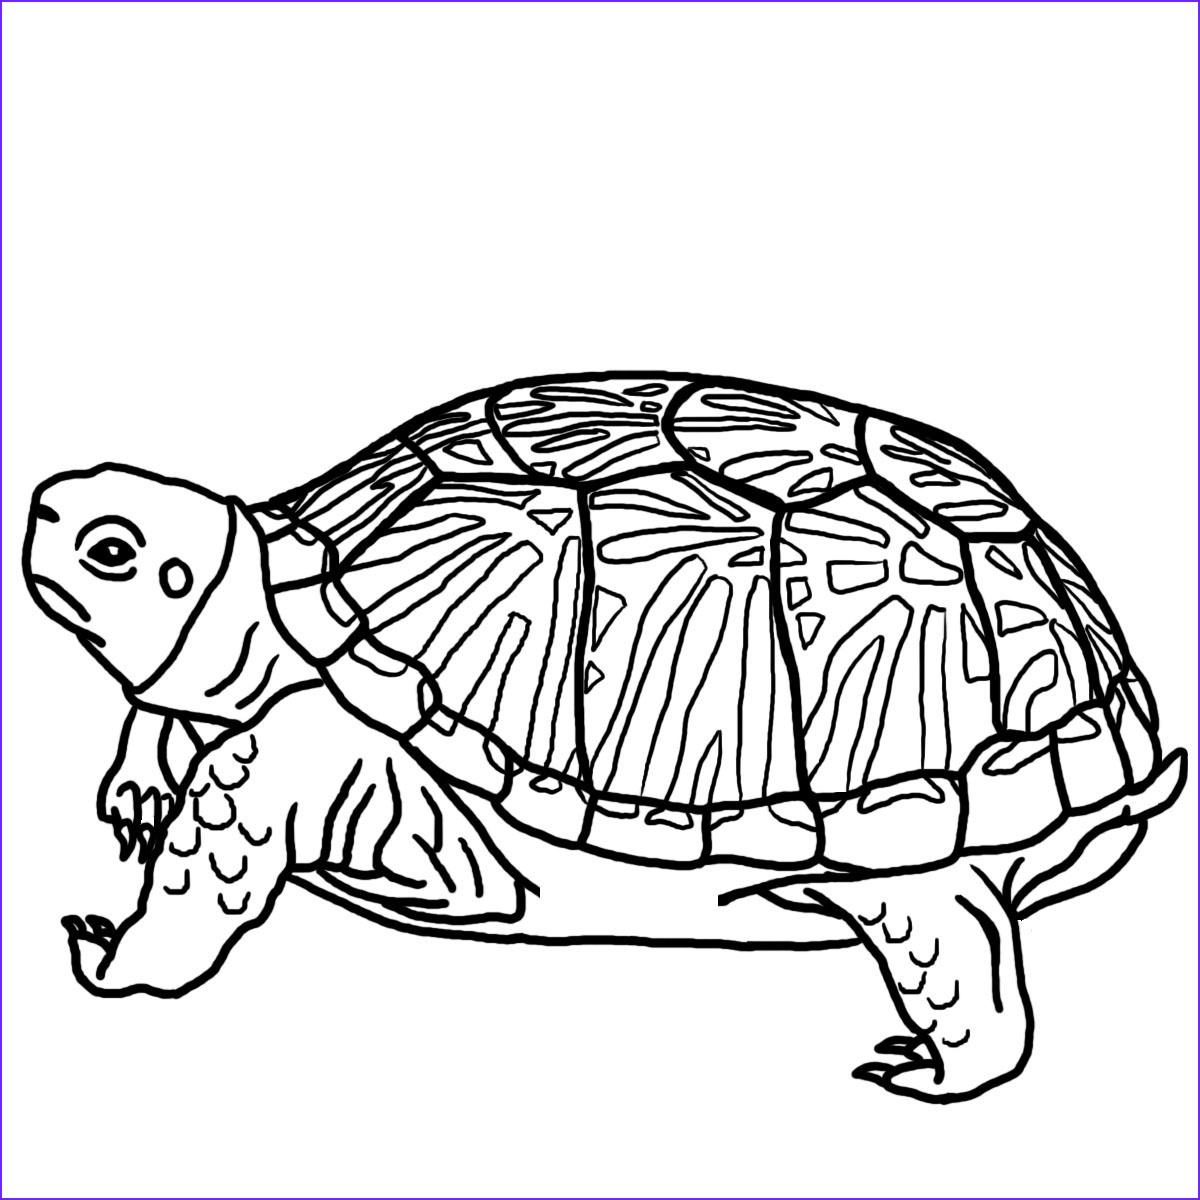 Turtle Coloring Books Luxury Image Free Printable Turtle Coloring Pages for Kids